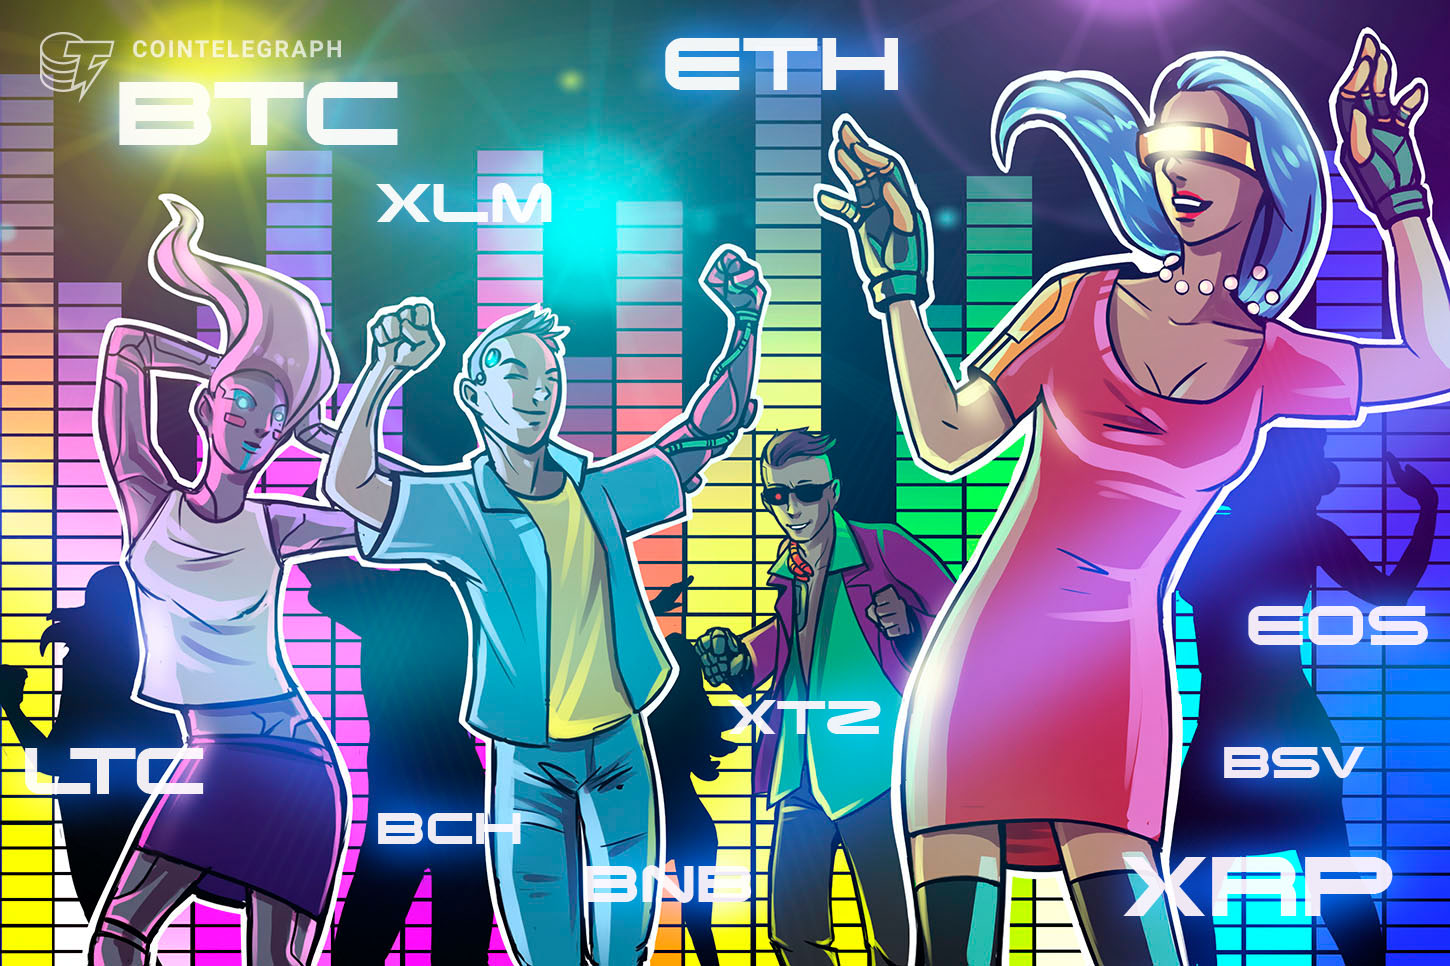 where to buy xlm cryptocurrency